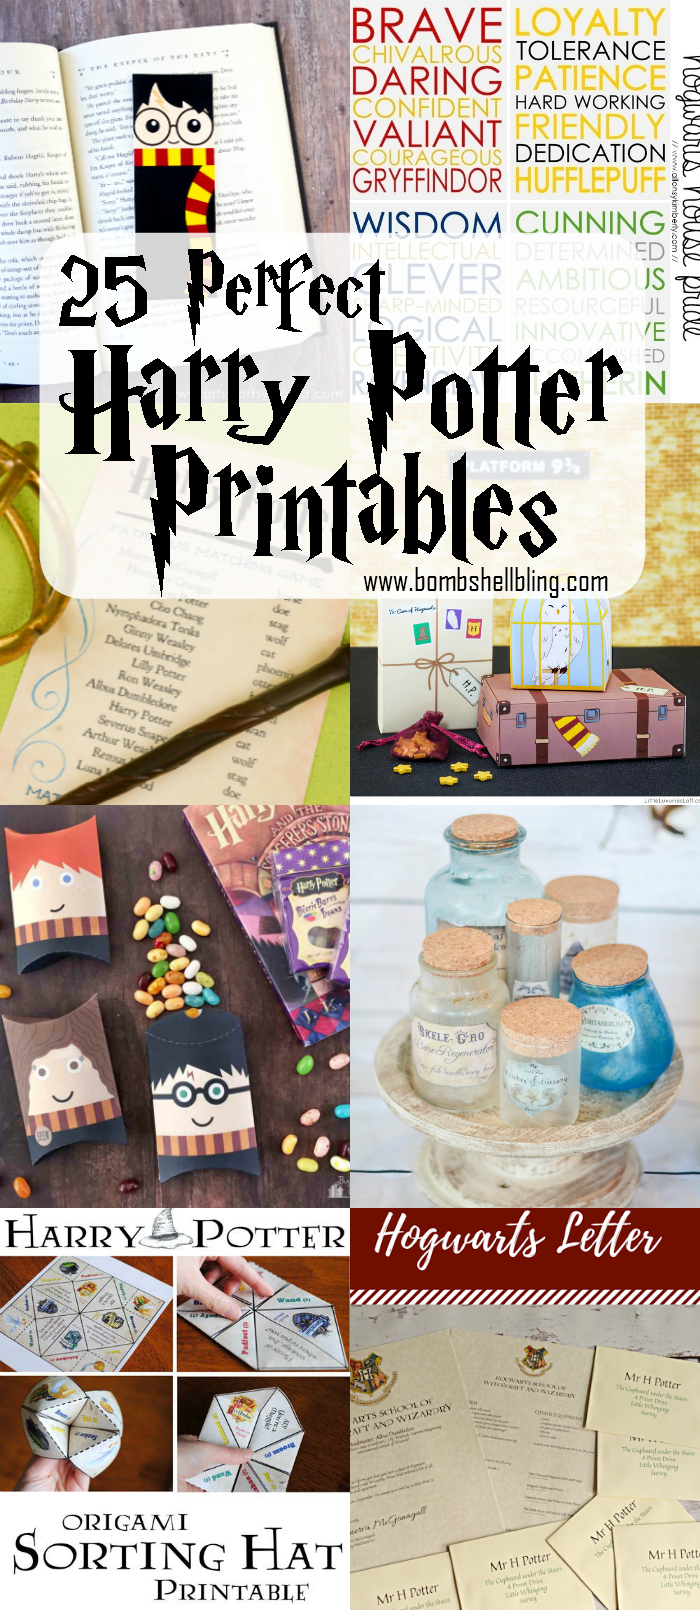 photo relating to Free Printable Harry Potter Bookmarks called 25 Ideal Harry Potter Printables - Gathered through Bombs